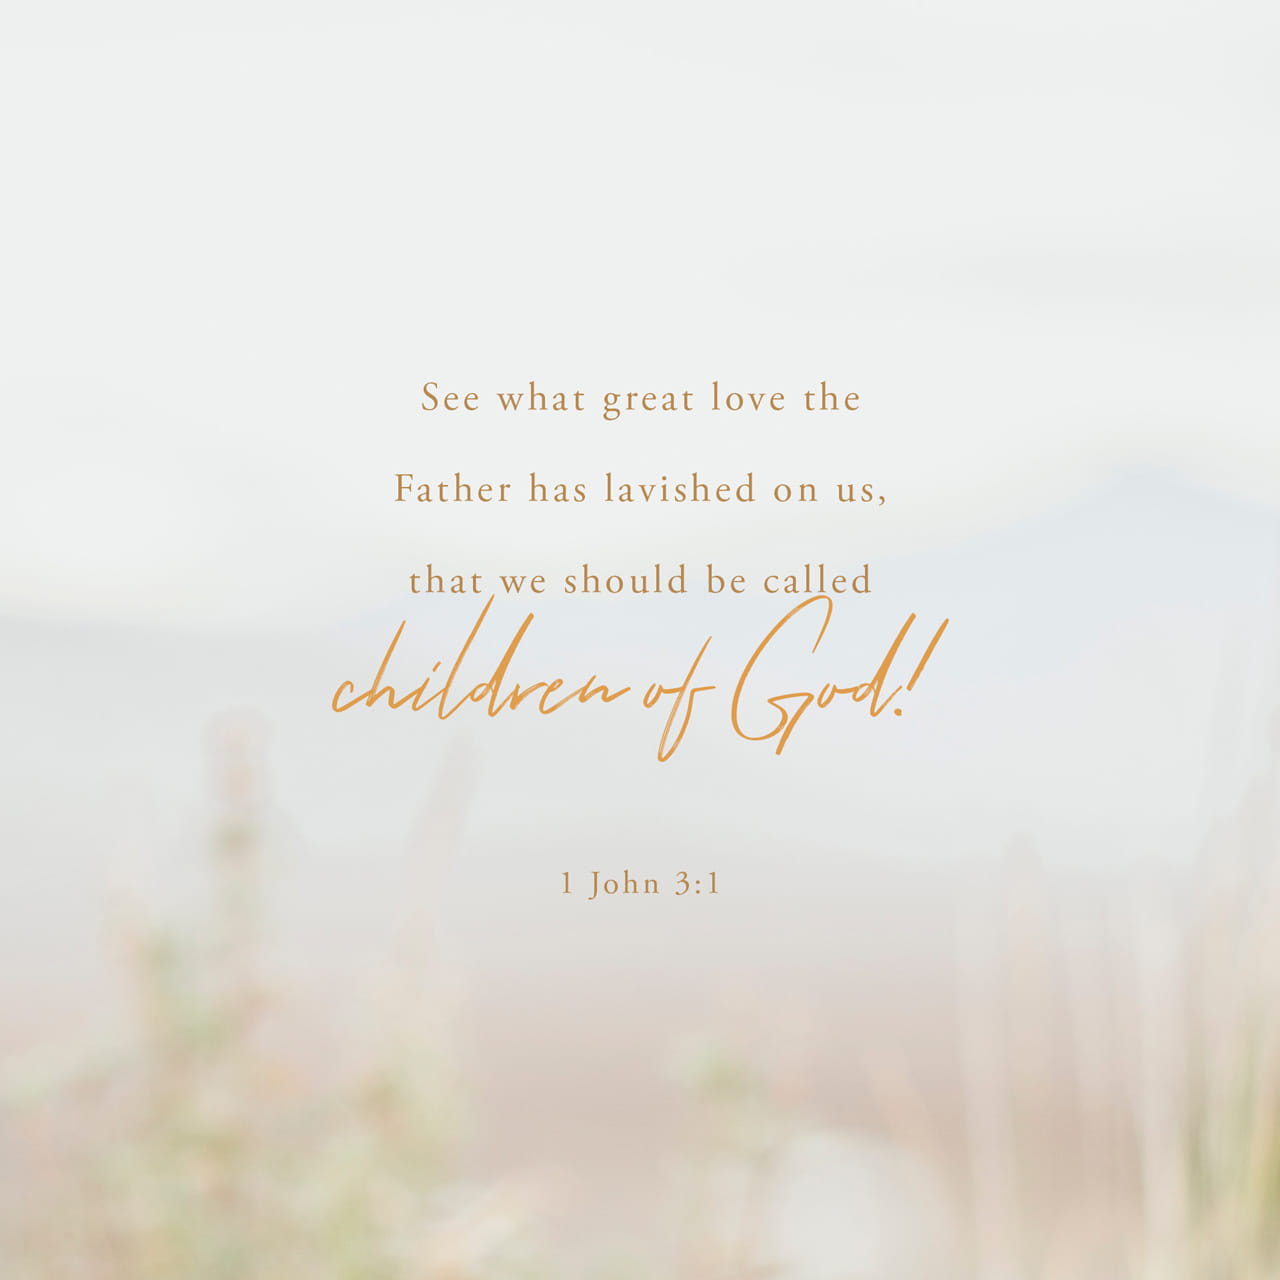 I John 3:1 Behold what manner of love the Father has bestowed on us, that we should be called children of God! Therefore the world does not know us, because it did not know Him. | New King James Version (NKJV)